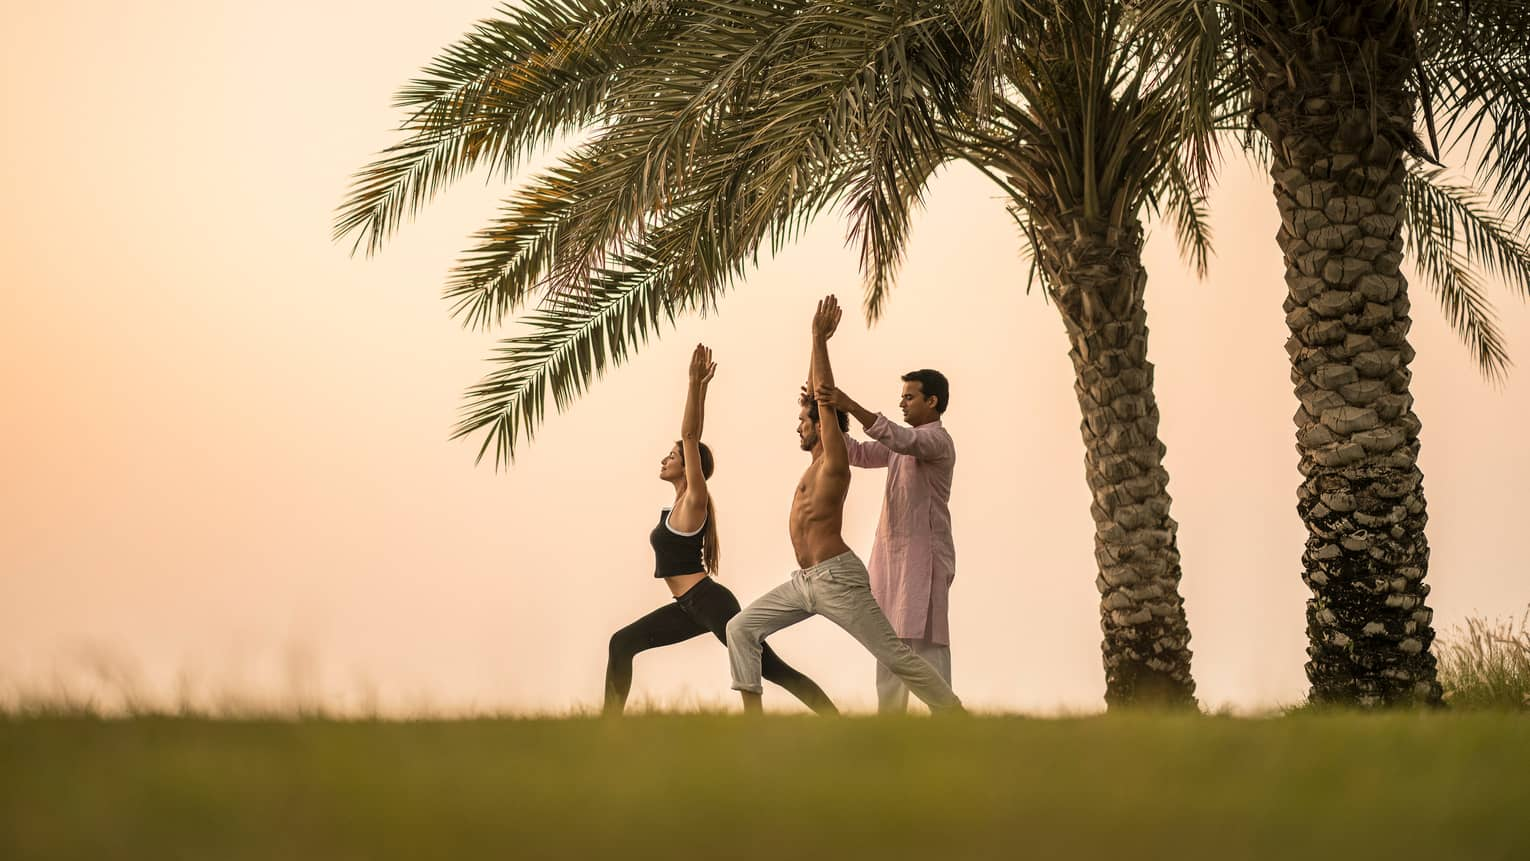 Yogi assists man in yoga stretch next to woman on lawn in front of two palm trees at sunrise